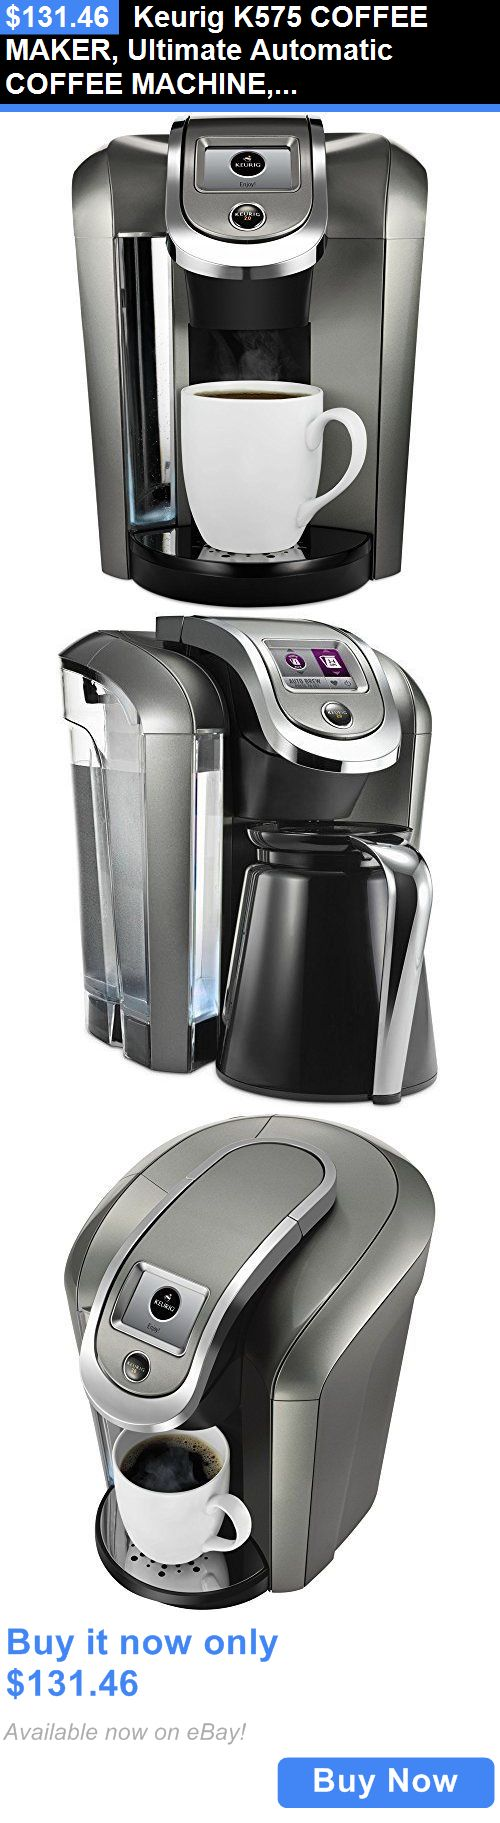 Uncategorized Where To Buy Small Kitchen Appliances small kitchen appliances keurig k575 coffee maker ultimate automatic machine platinum buy